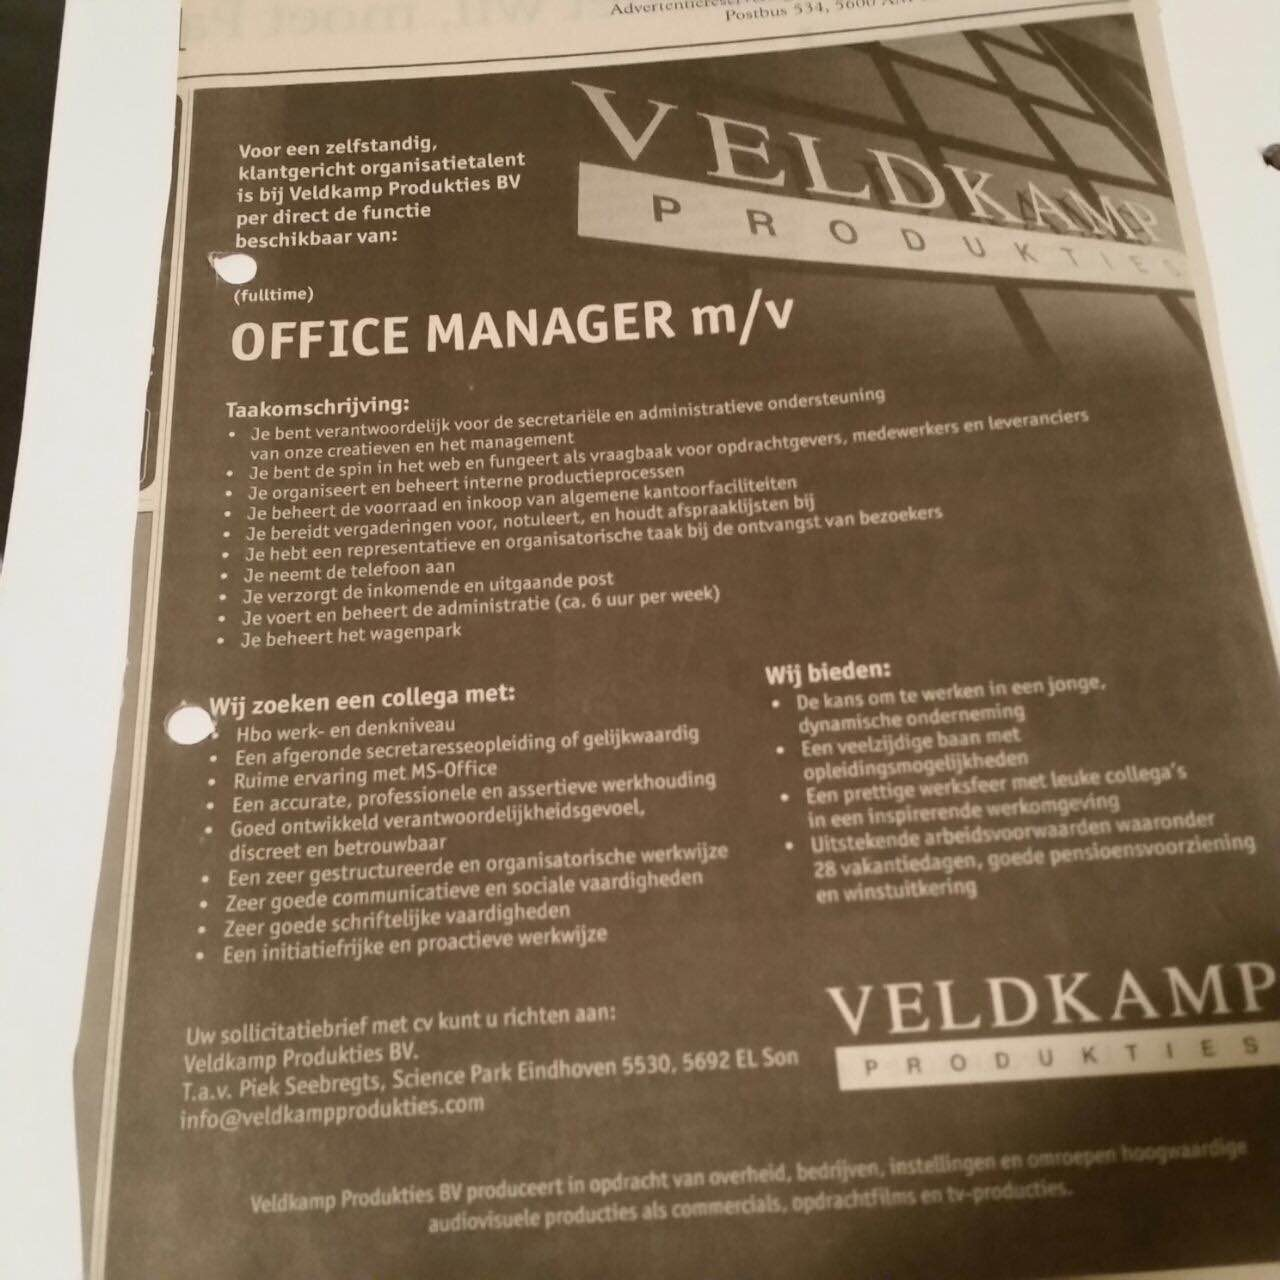 Office Manager vacature